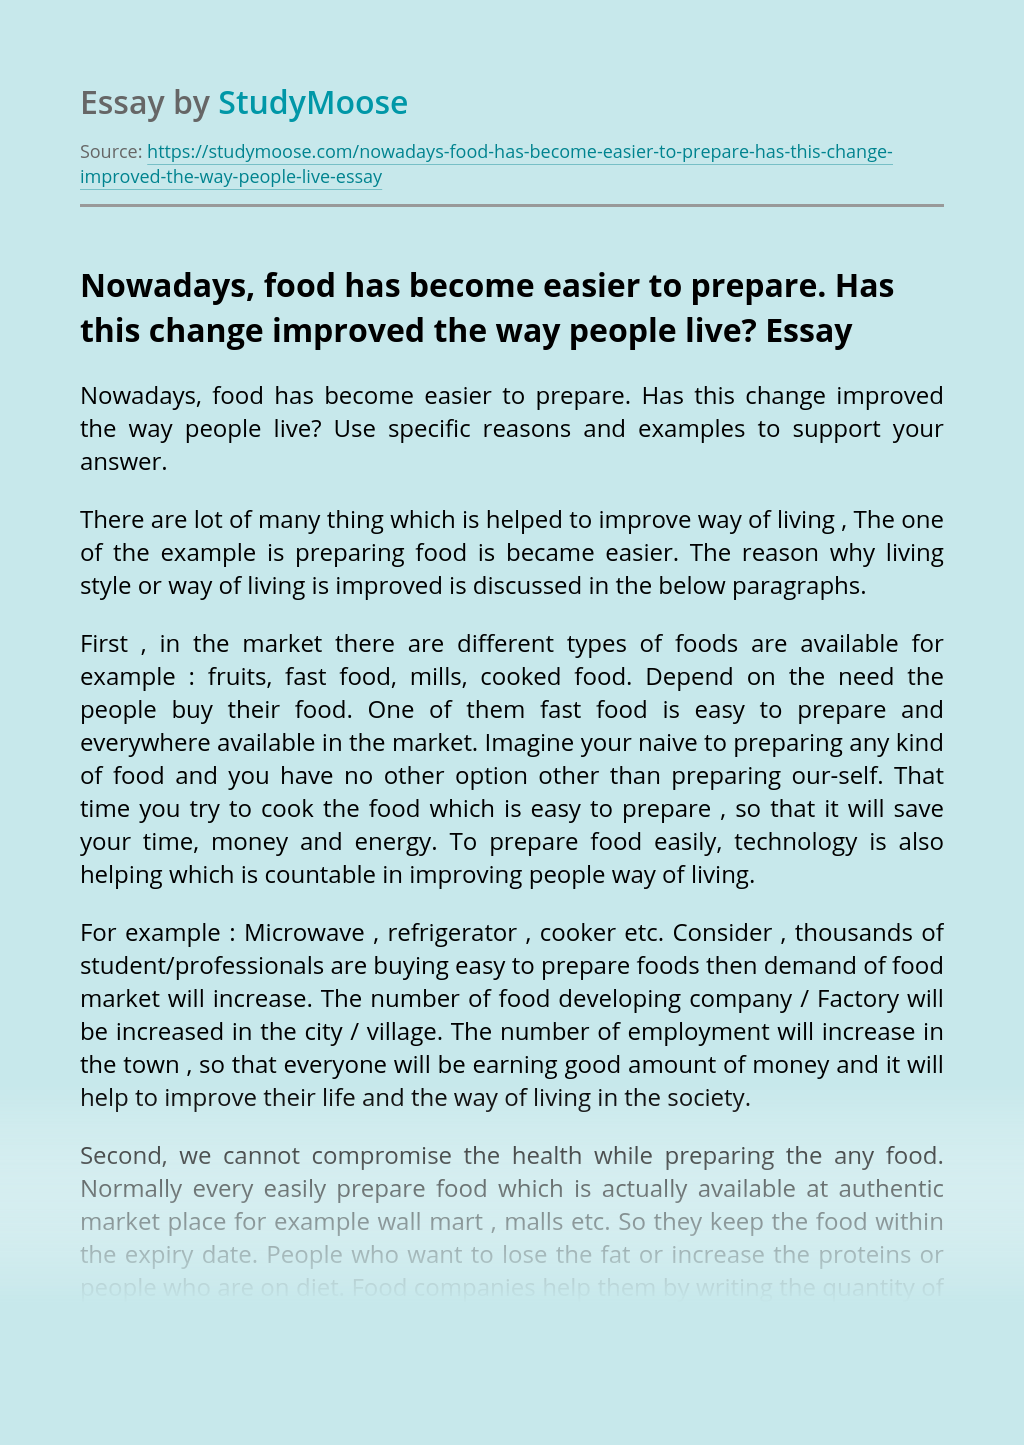 Nowadays, food has become easier to prepare. Has this change improved the way people live?